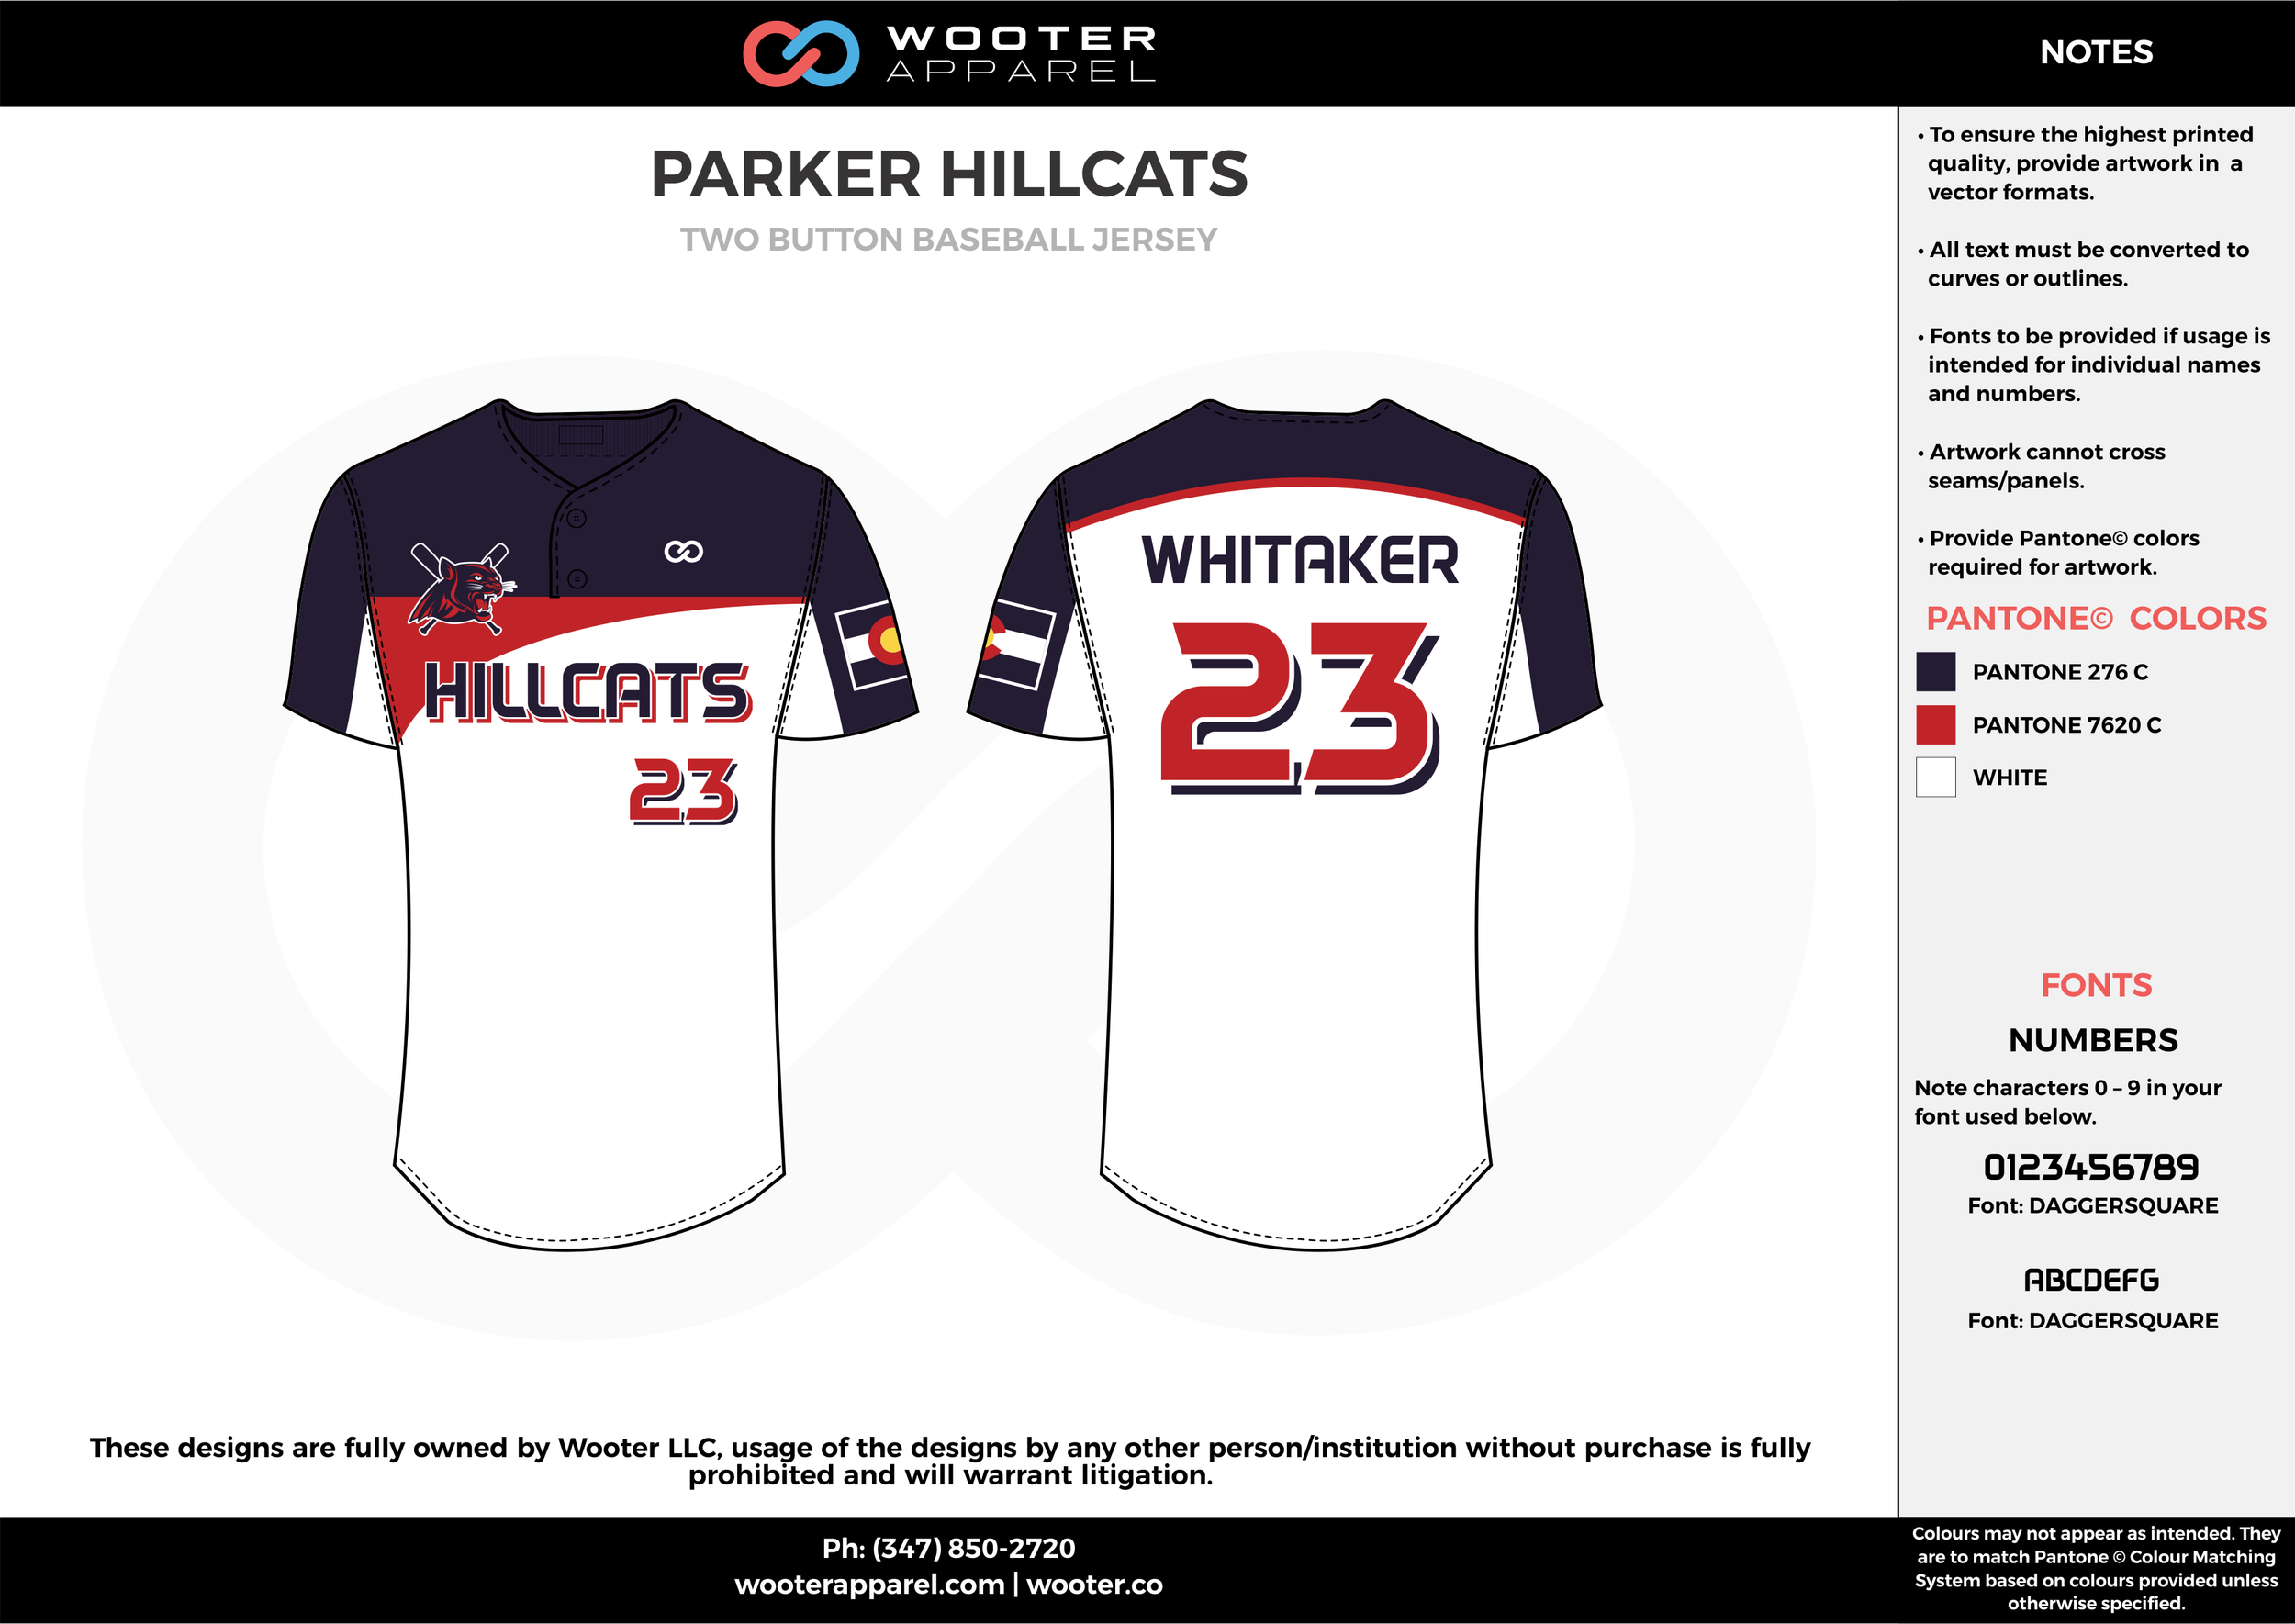 PARKER HILLCATS white red black baseball uniforms jerseys pants